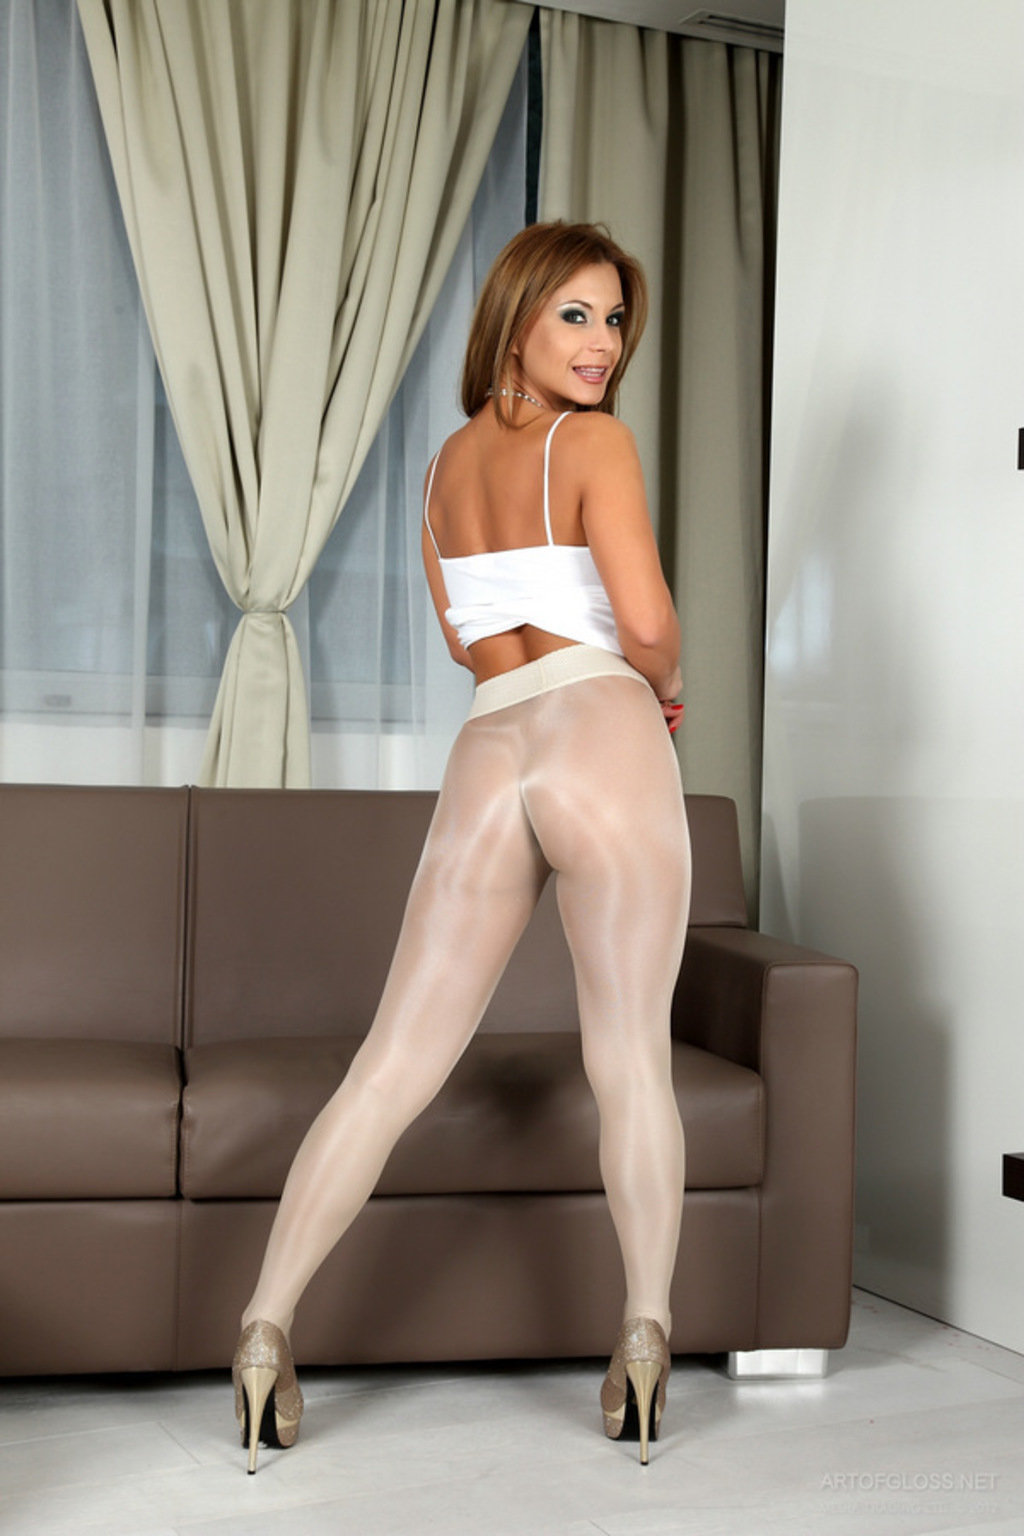 hot-babe-pantyhose-naked-too-young-pics-xxx